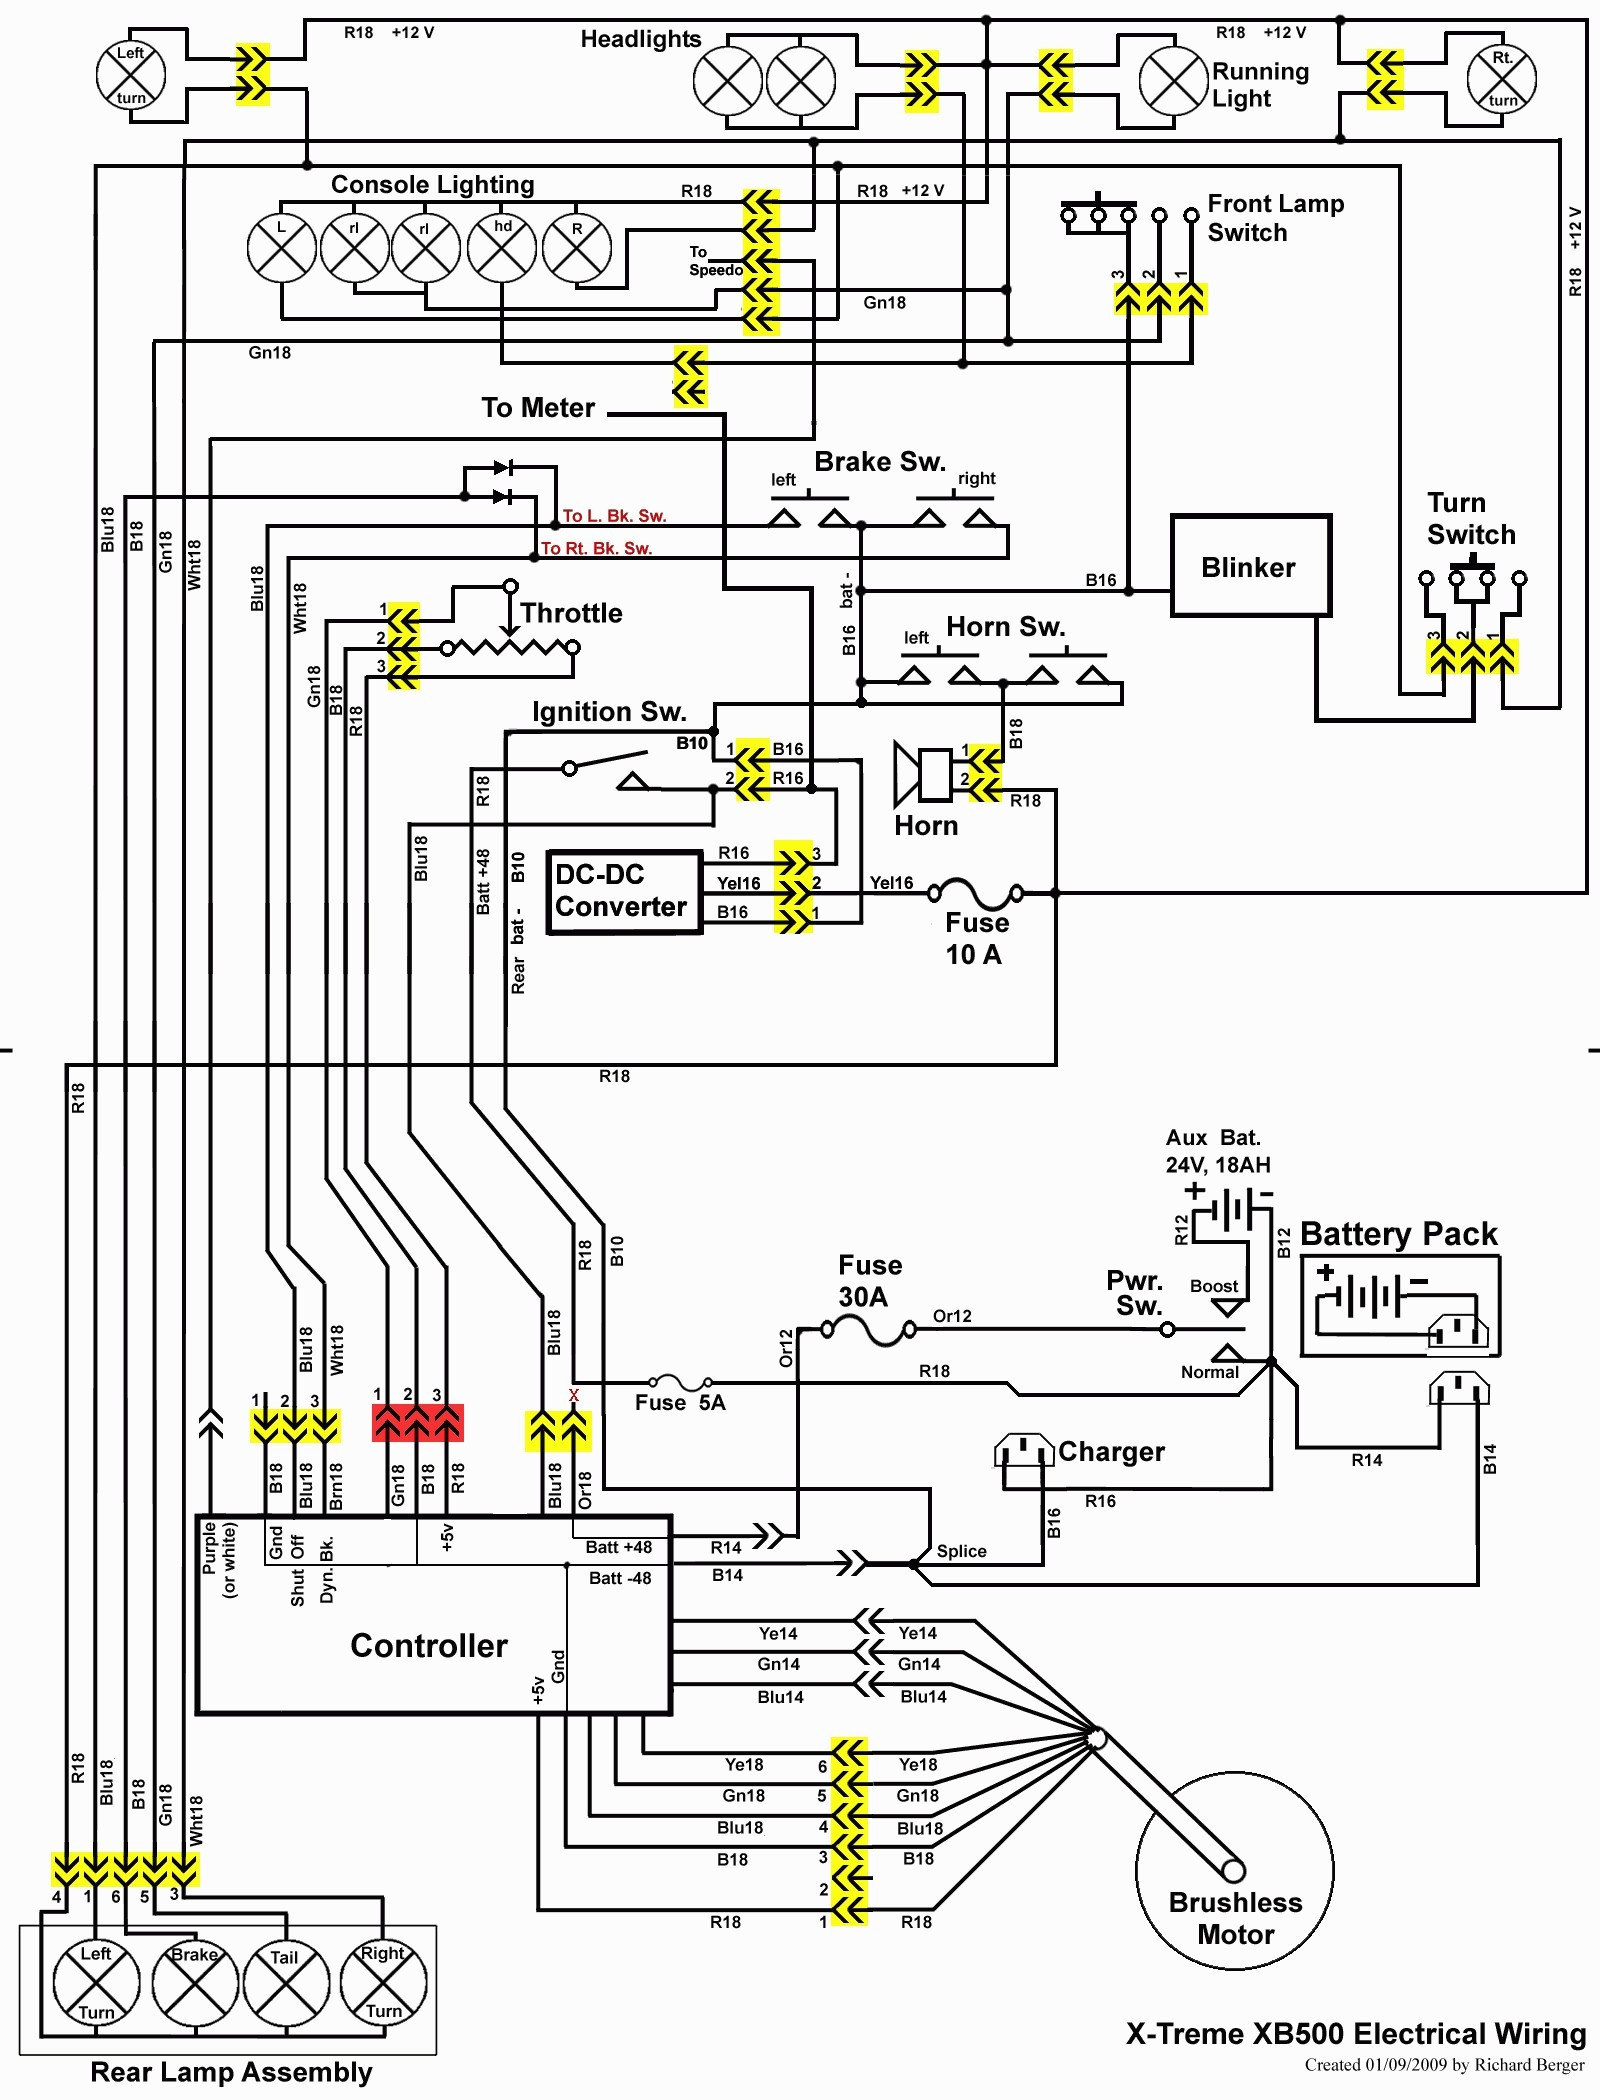 hight resolution of mobility scooter wiring diagram wiring diagram electric scooter new baja scooter 48 volt wiring schematic